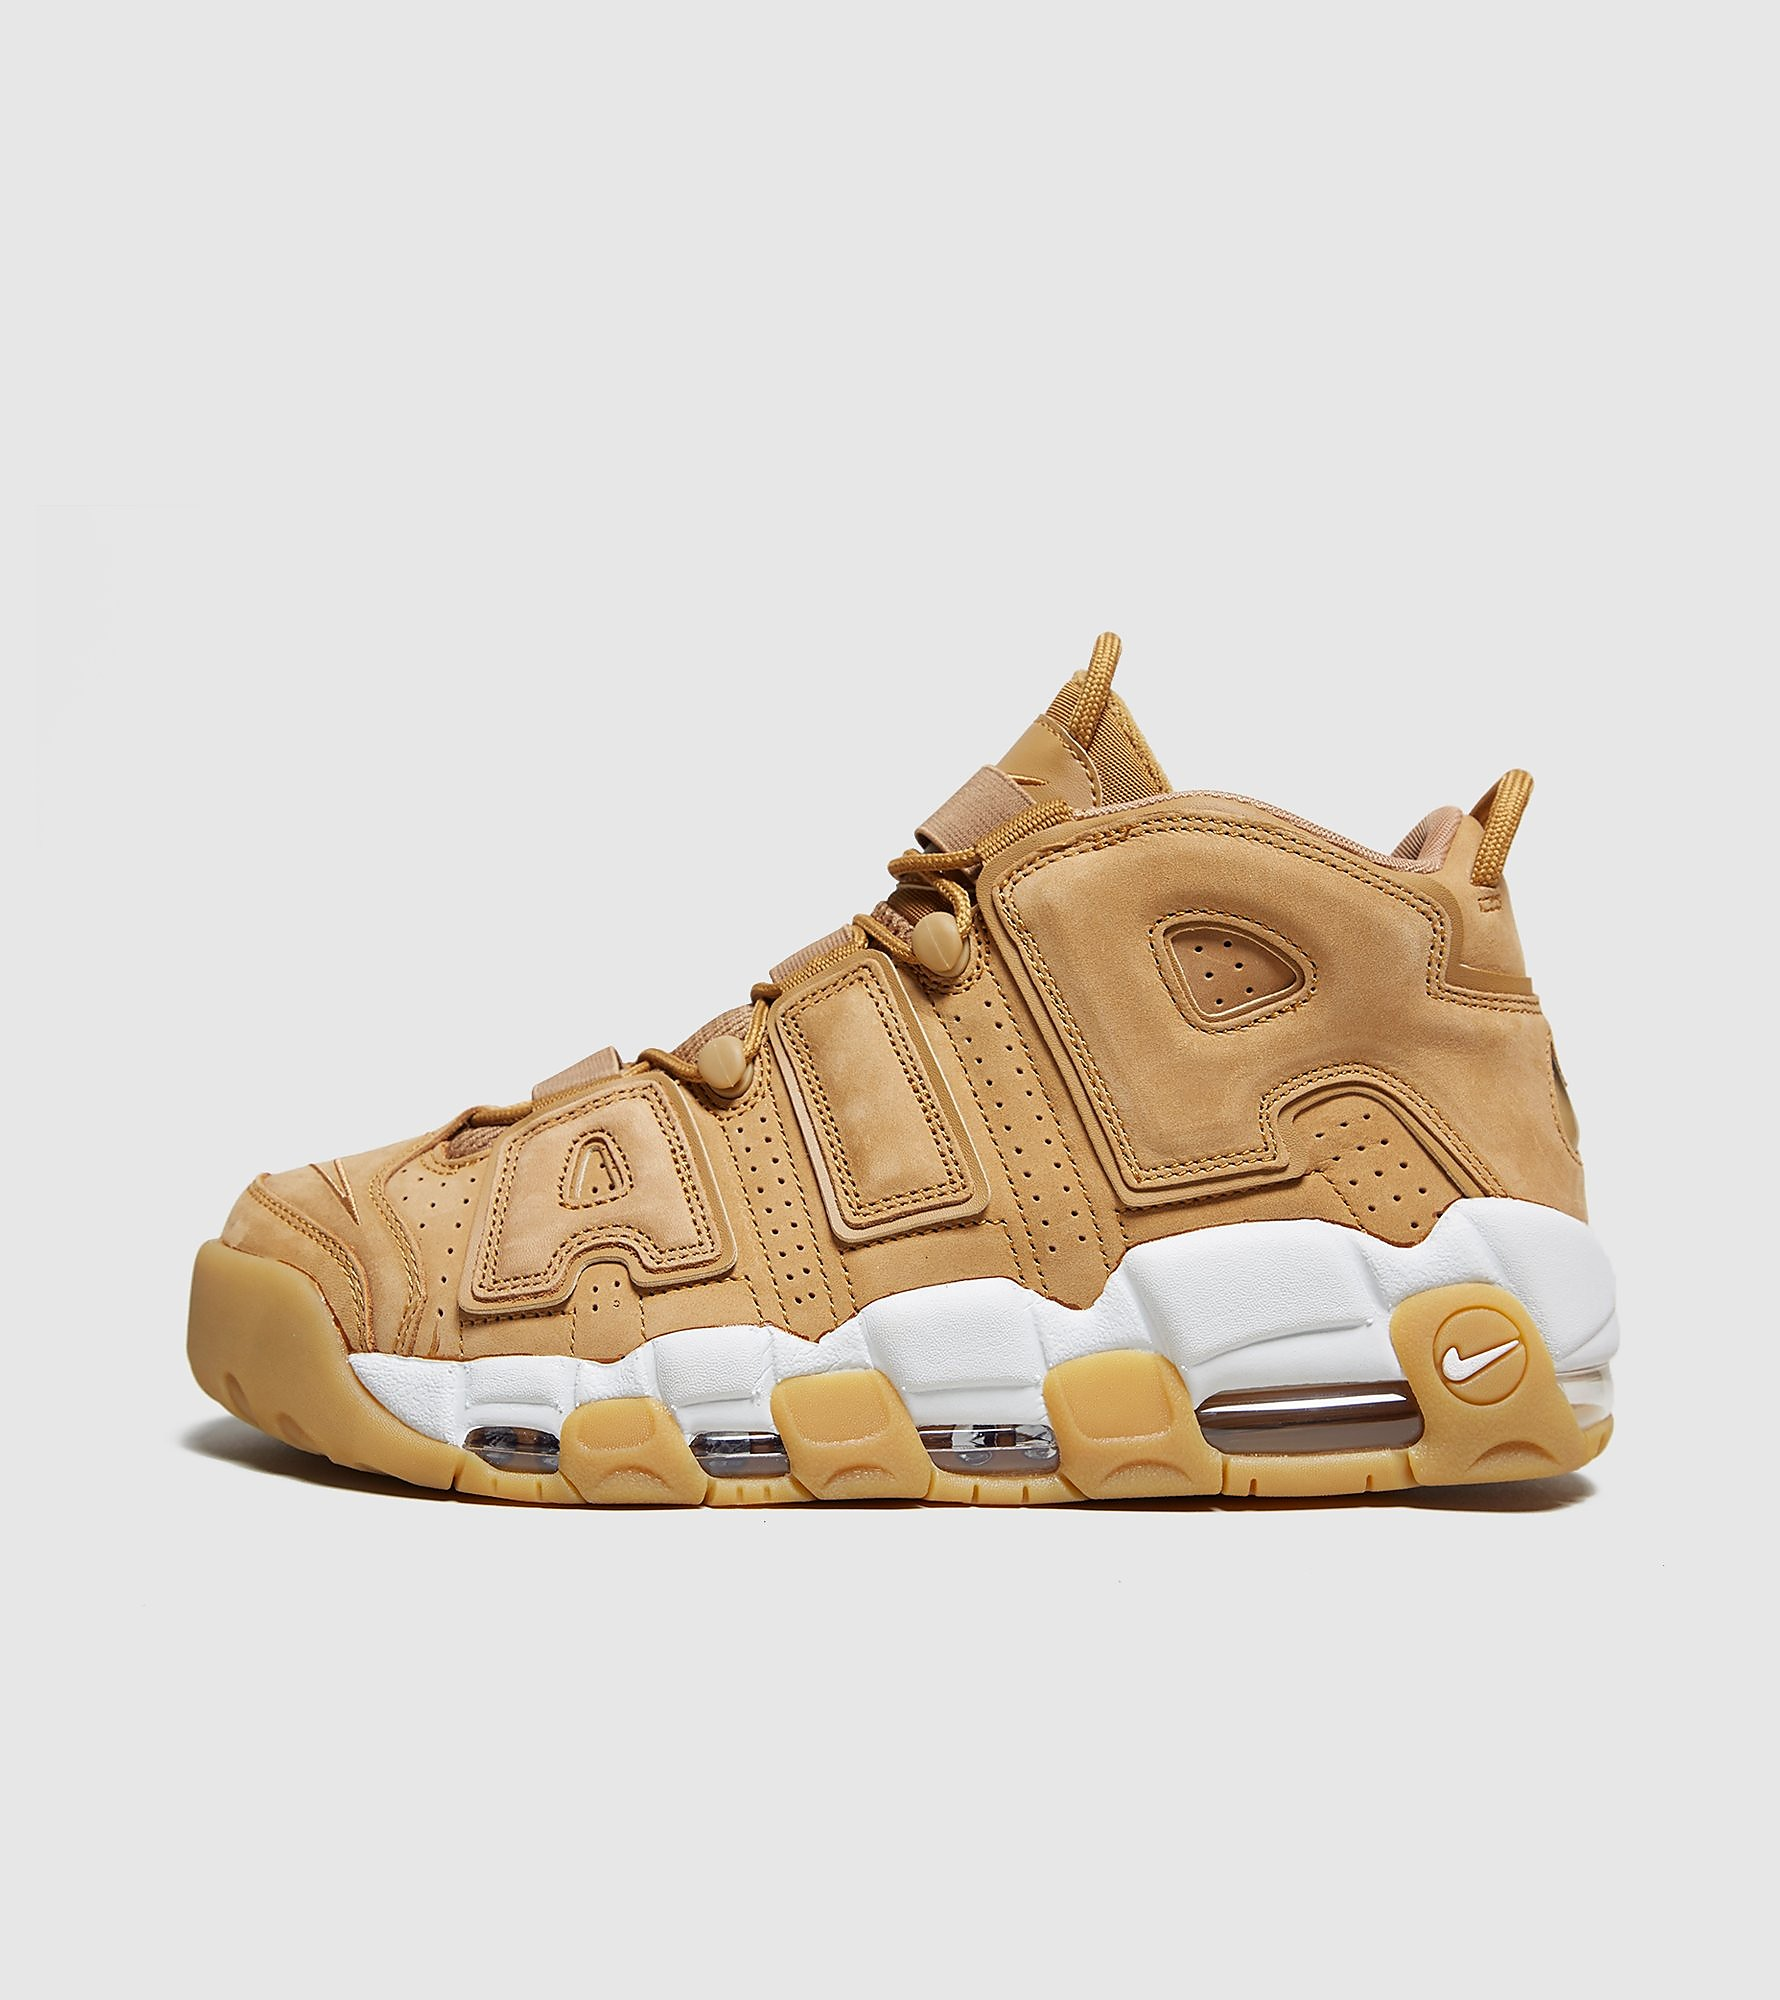 Nike Air More Uptempo '96 Flax